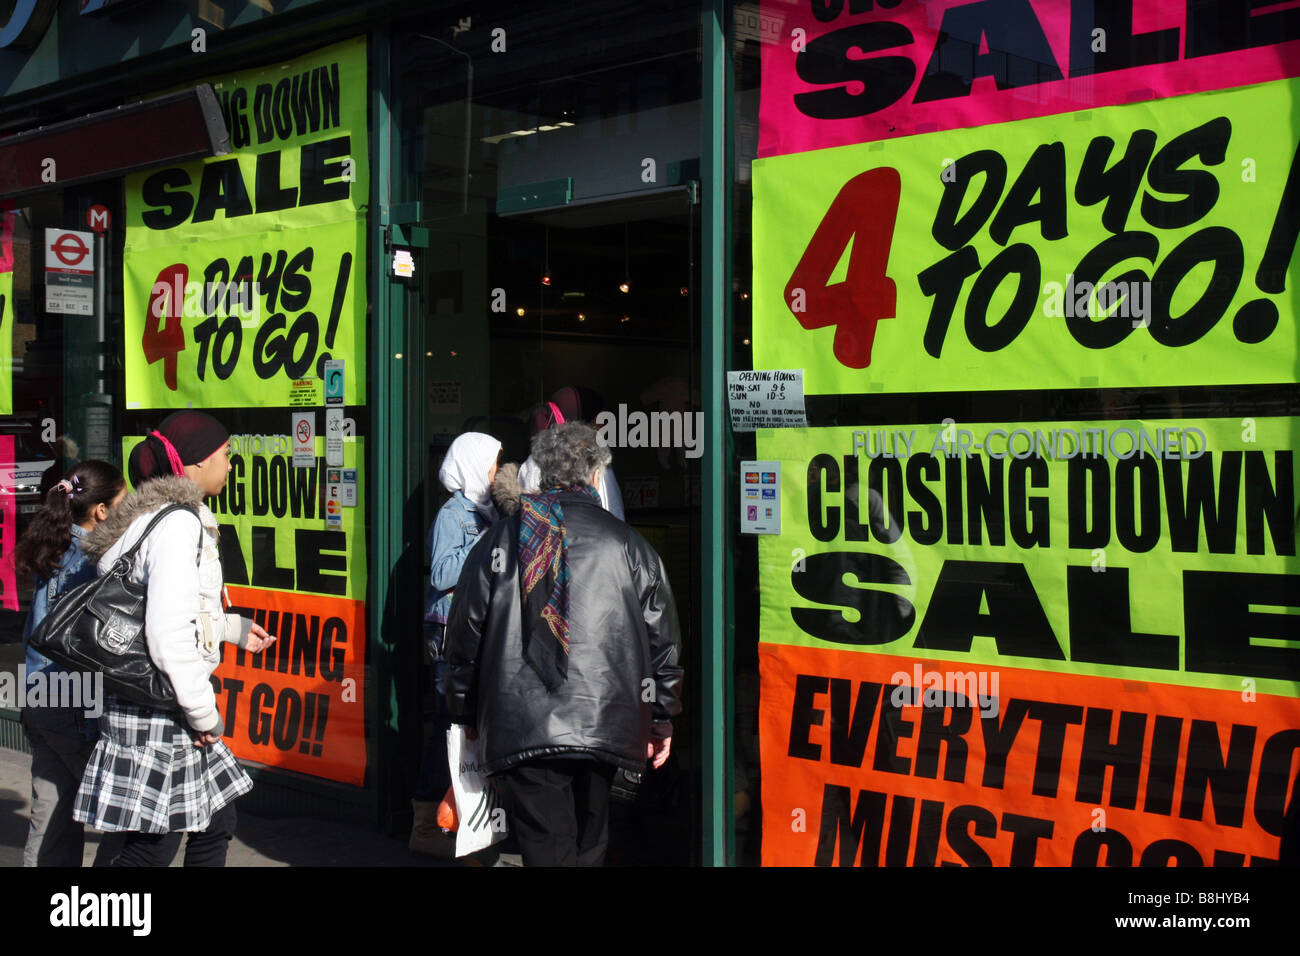 Shoppers rushing into a closing down sale shop, reflecting the difficult economic situation in the high street. - Stock Image